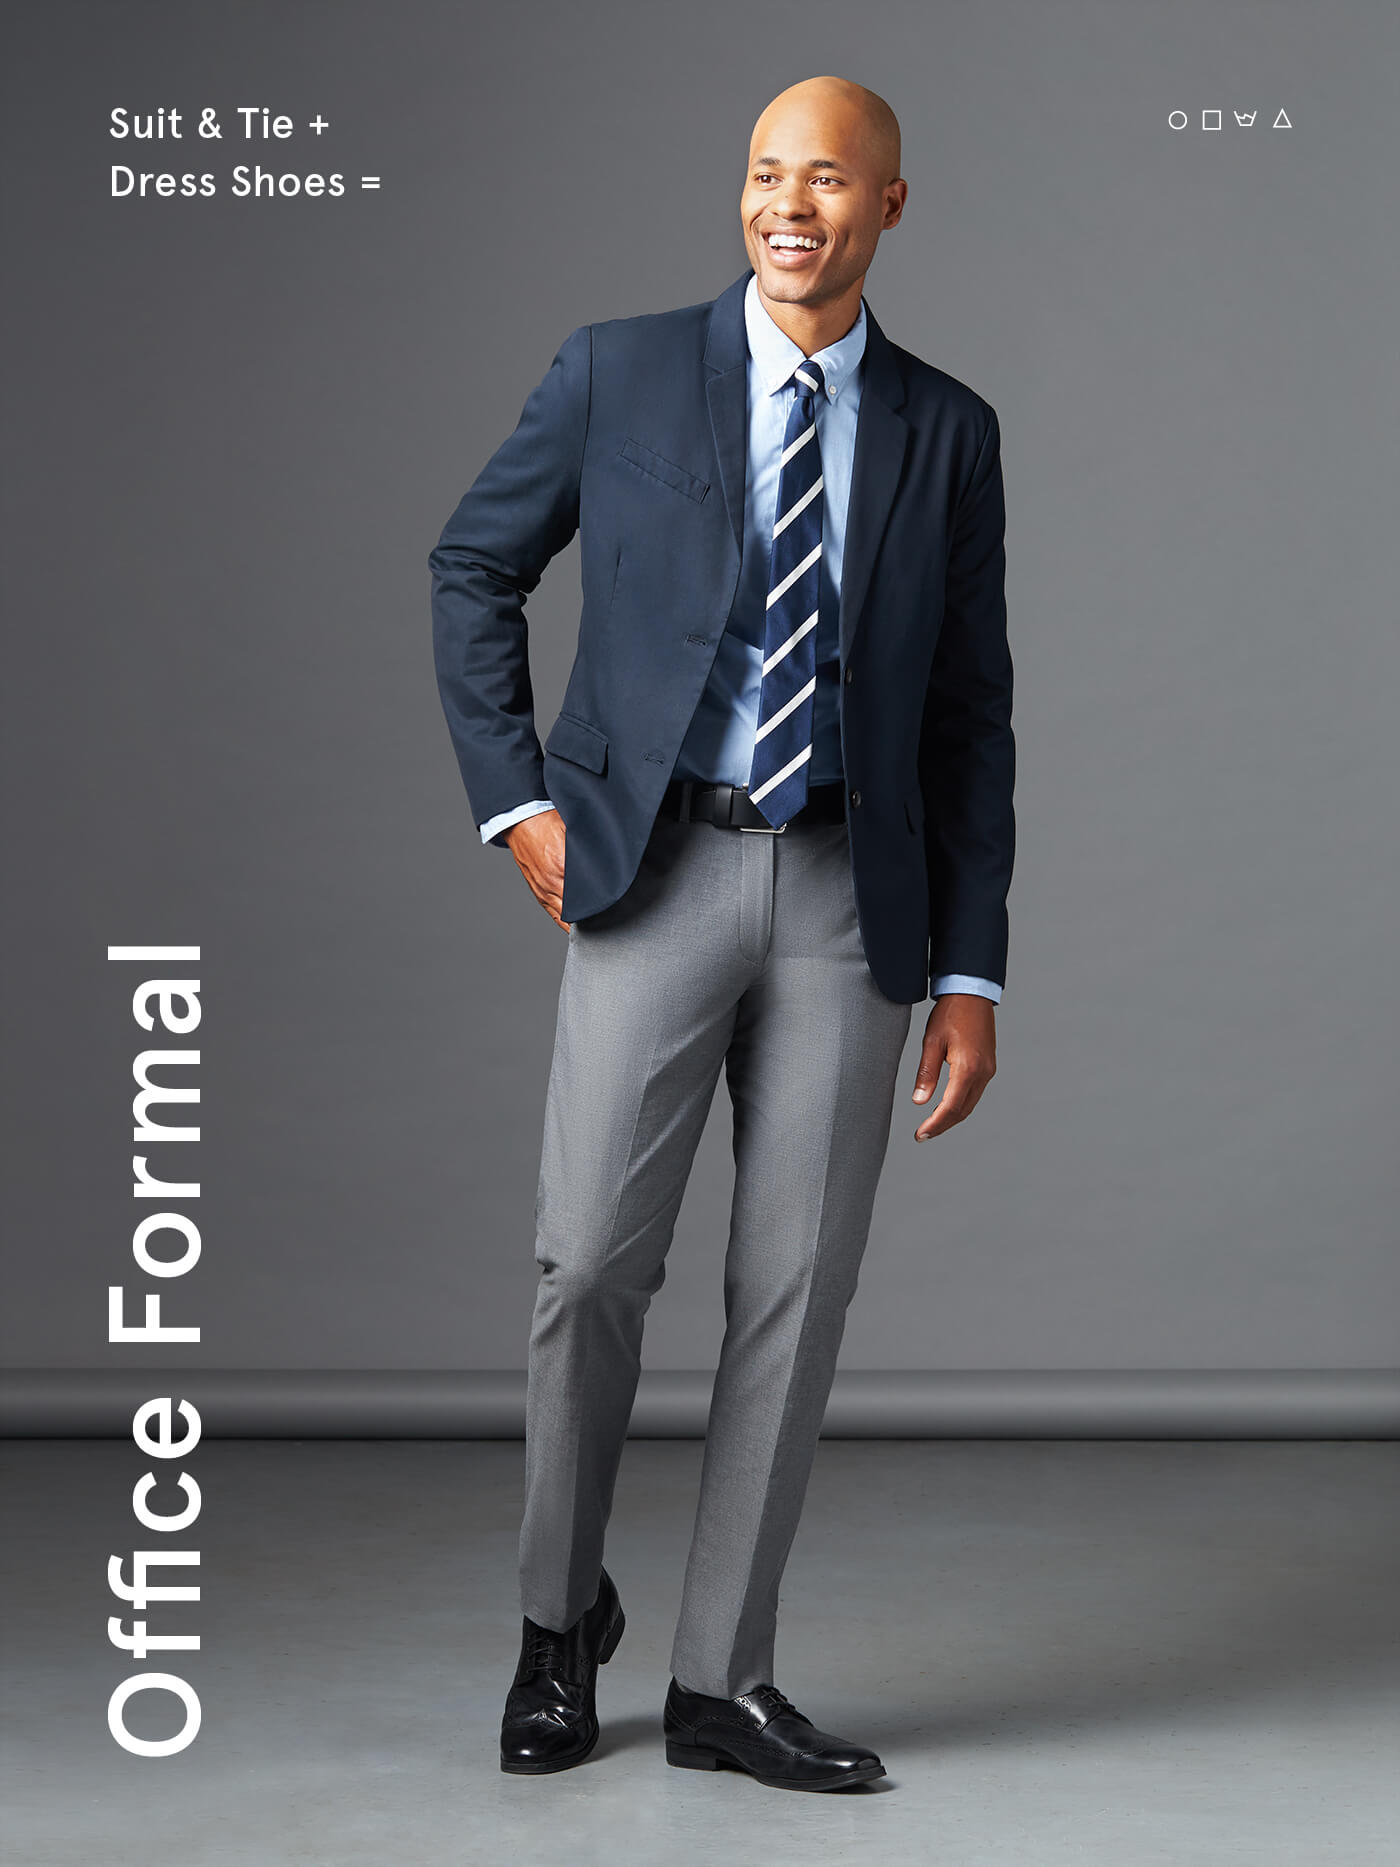 what is office formal? suit with a tie and dress shoes